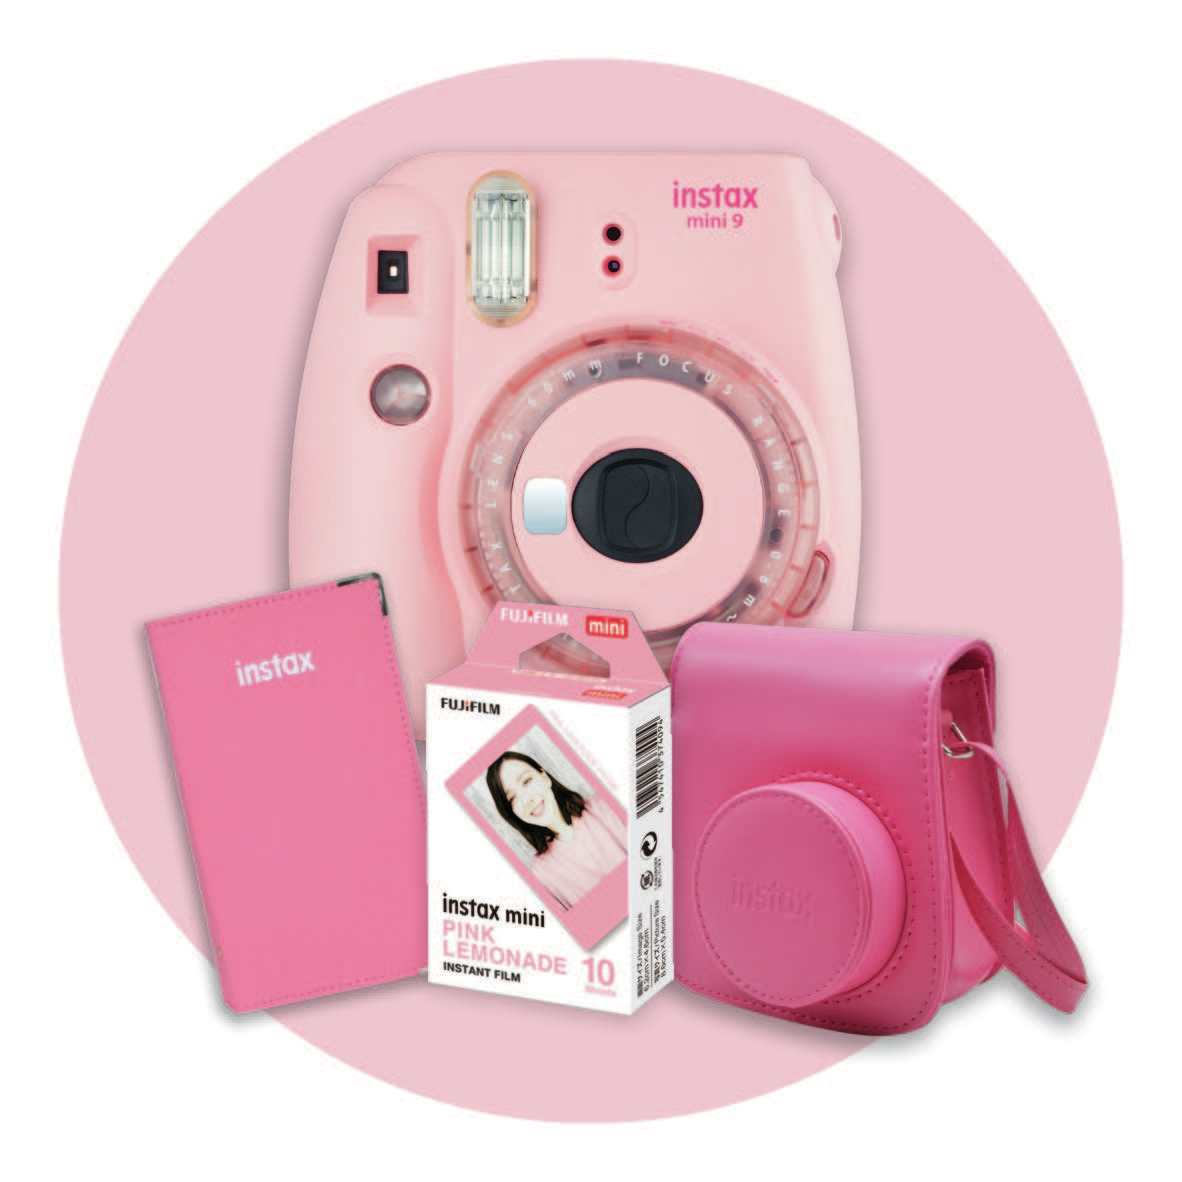 Instax: Fujifilm Mini9 Limited Edition Gift Pack - Pink image